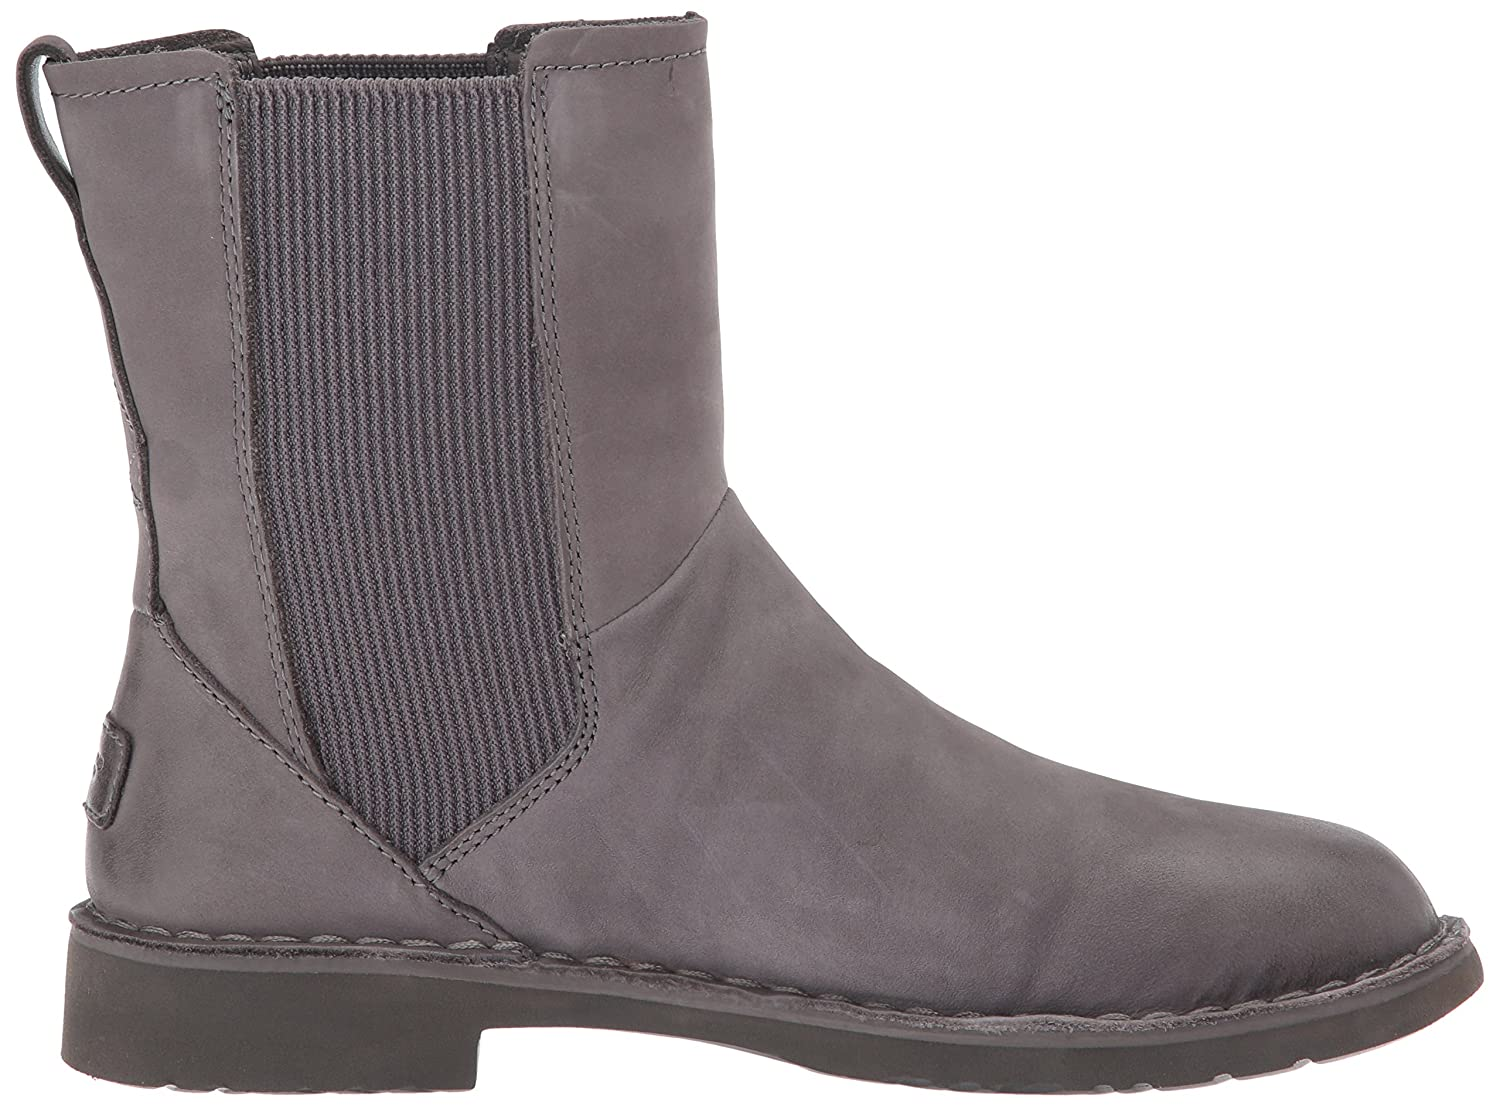 UGG Women's Larra Snow Boot, Charcoal, 8.5 M US: Amazon.ca: Shoes & Handbags